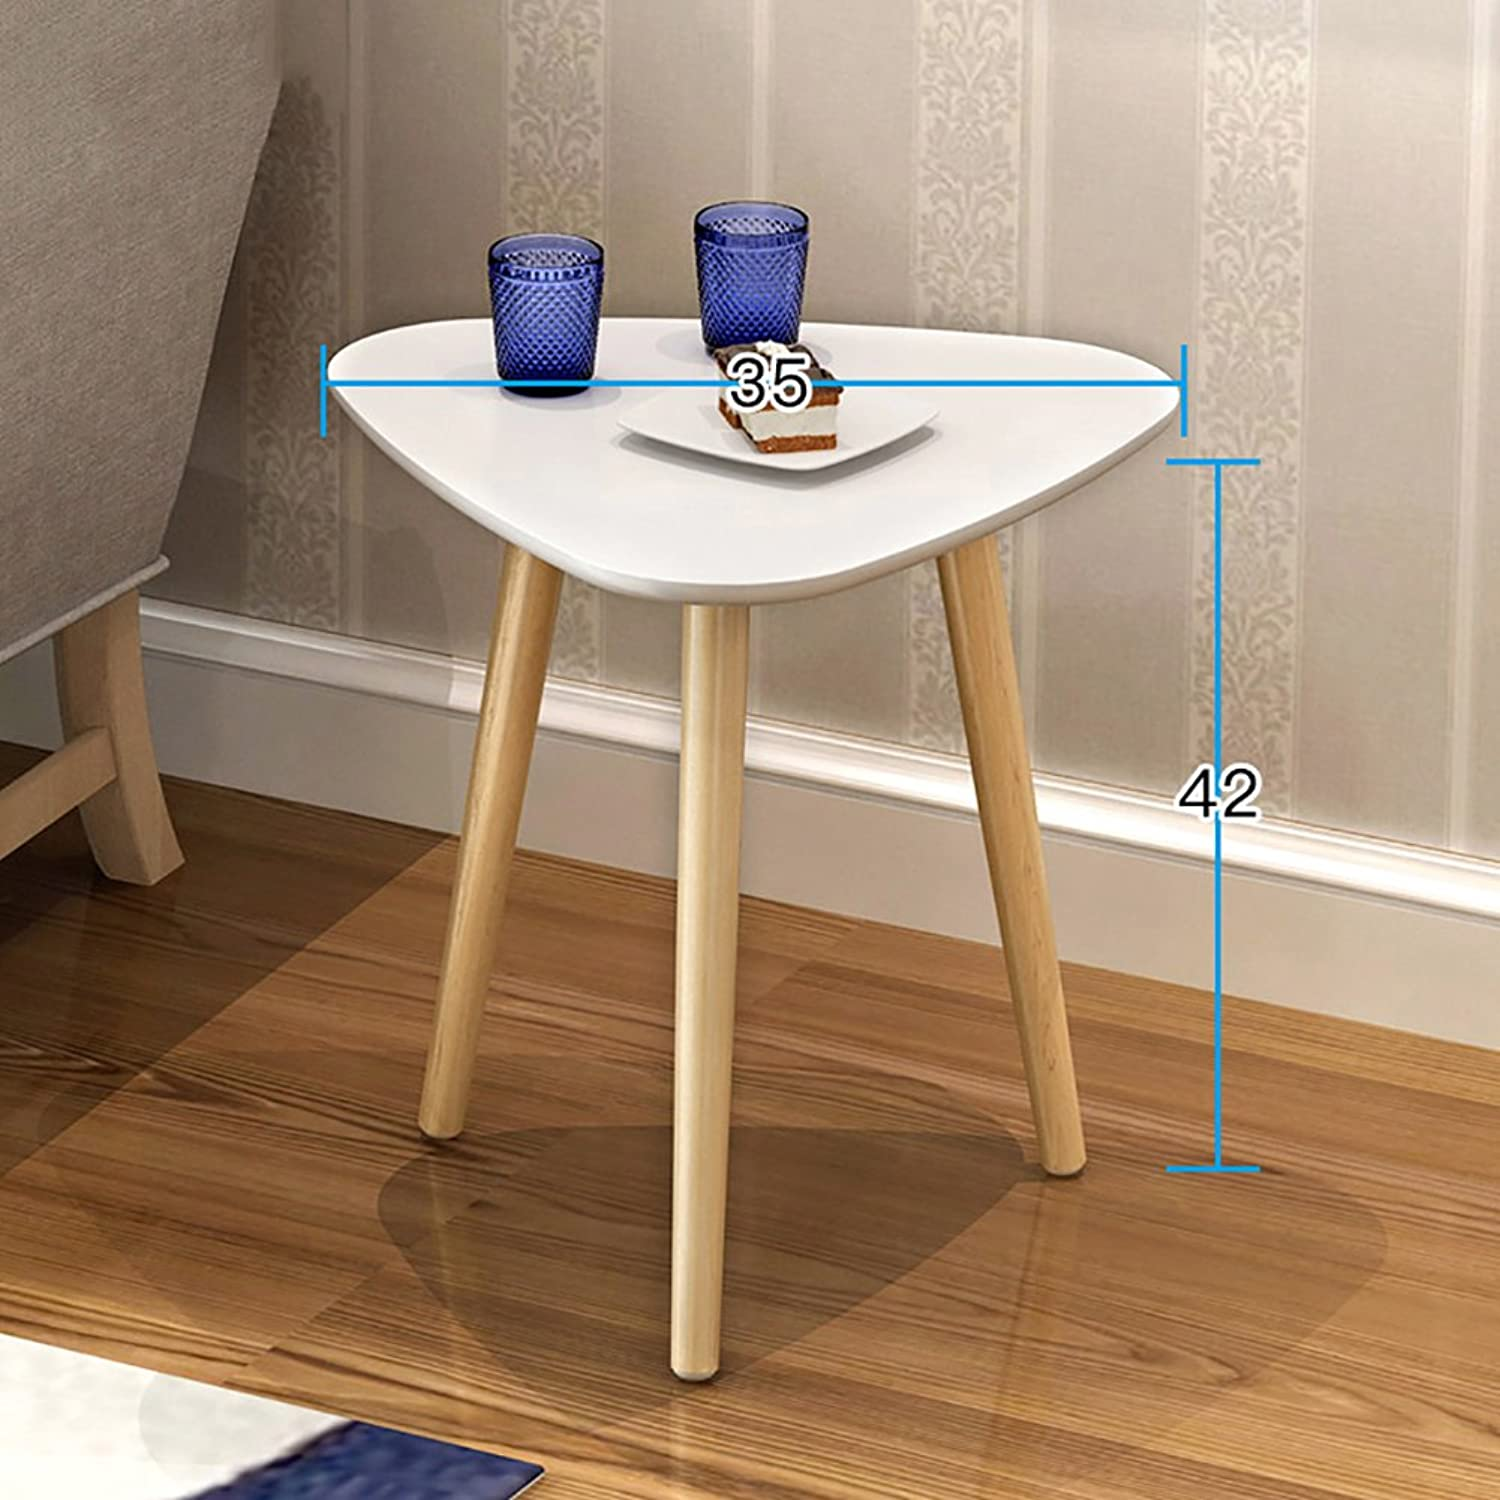 Solid Wood Waterproof Side Table, Triangle Living Room Sofa Table Coffee Table Bedroom Night Table Vintage Telephone Table -White 35x42cm